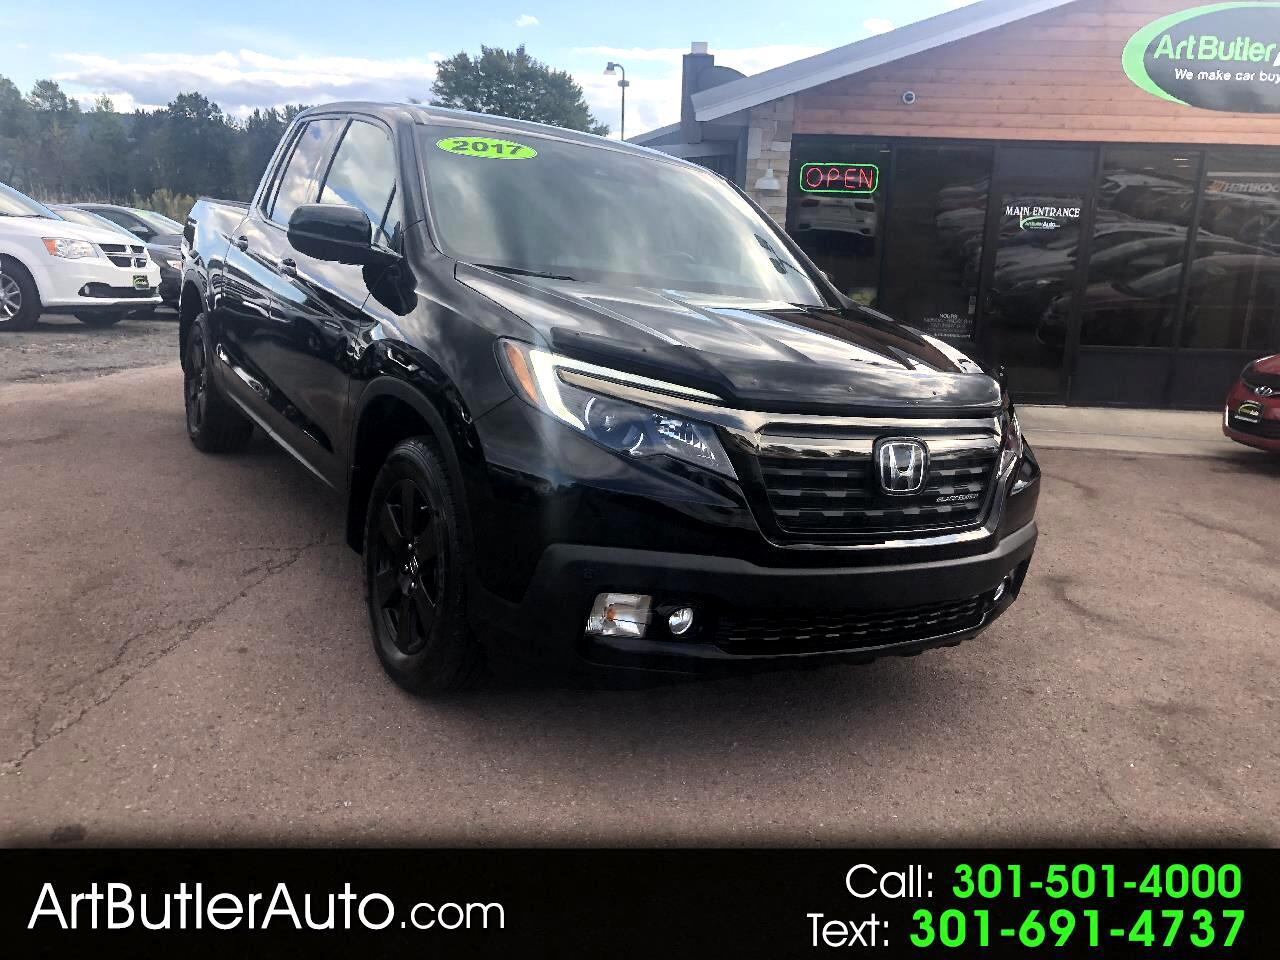 2017 Honda Ridgeline Black Edition 4x4 Crew Cab 5.3' Bed